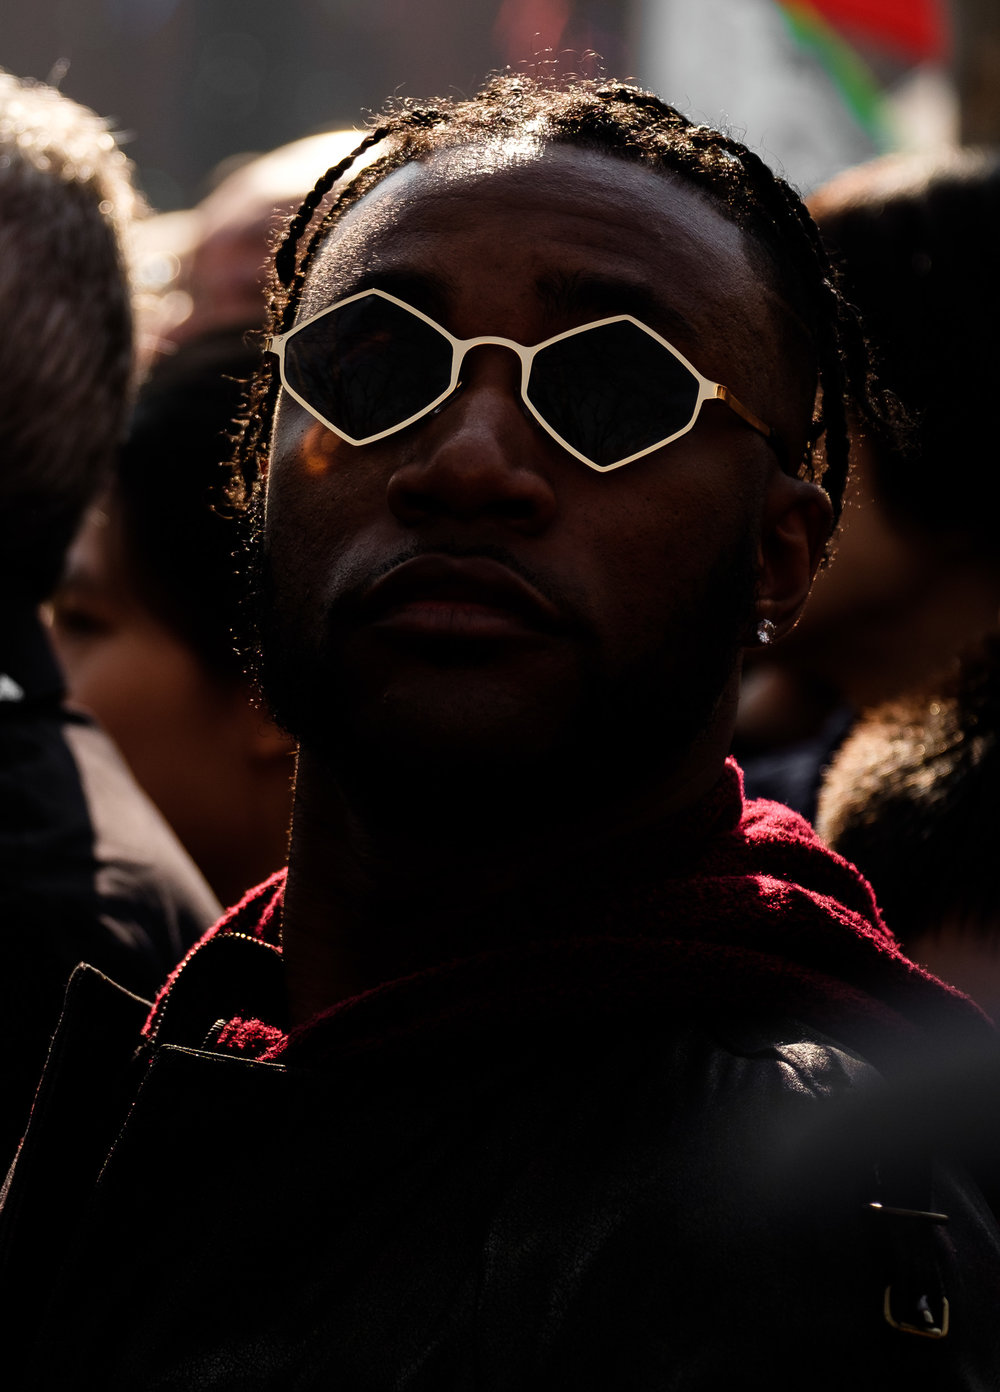 I underexposed this shot to dramatize the way the gold rims of this guy's glasses caught the reflected sunlight.